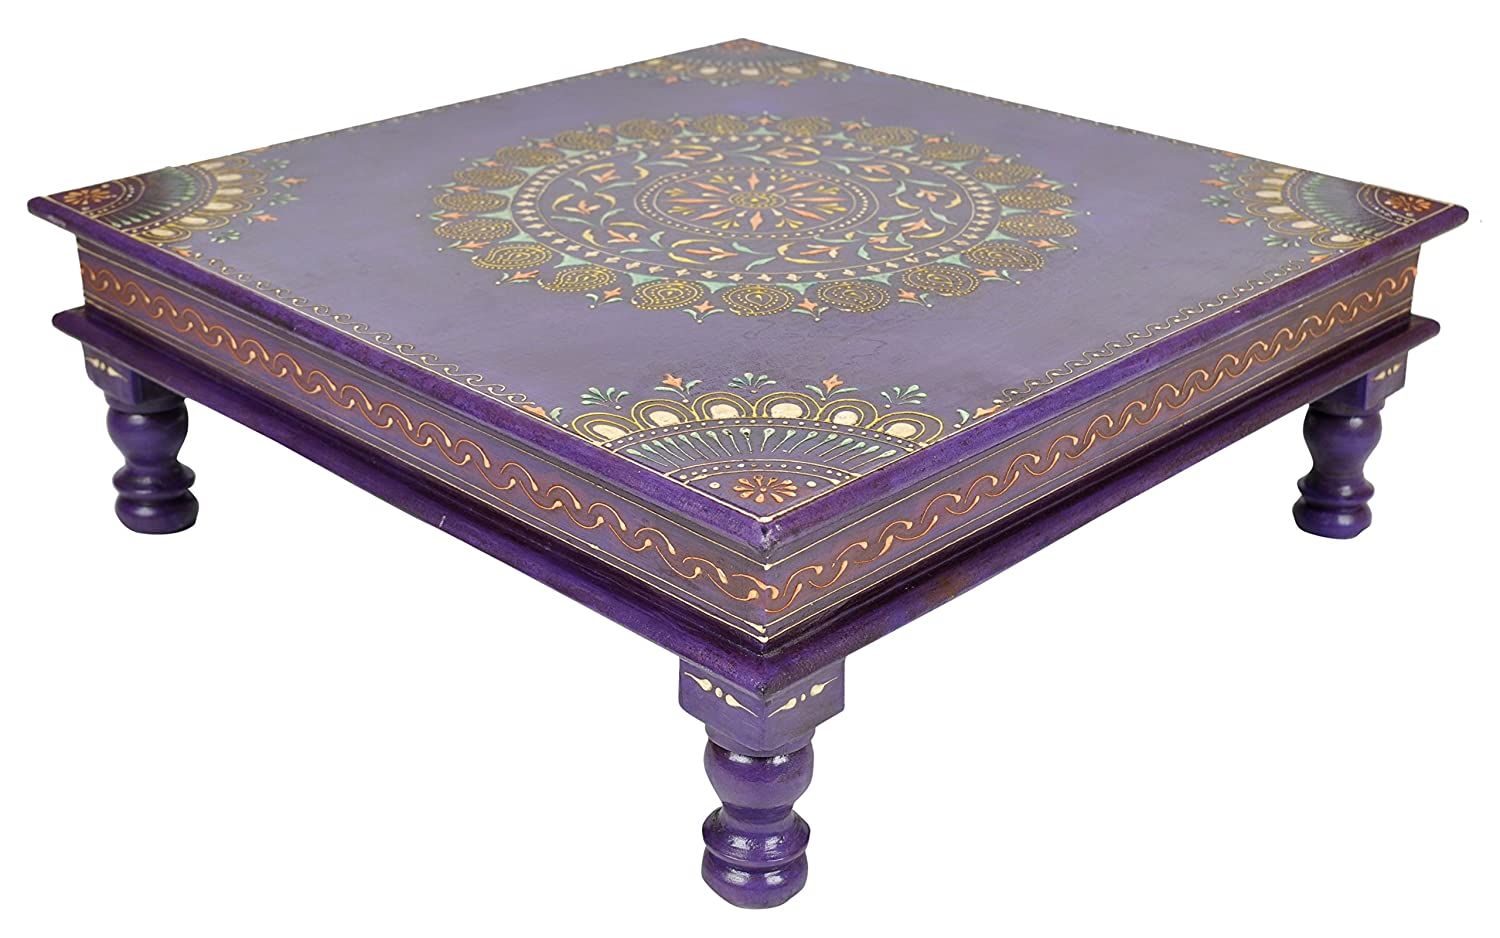 Amazon.com: Vintage Handpainted Work Design Wooden Puja Bajot Table 18 X 18  X 6 Inches: Kitchen U0026 Dining